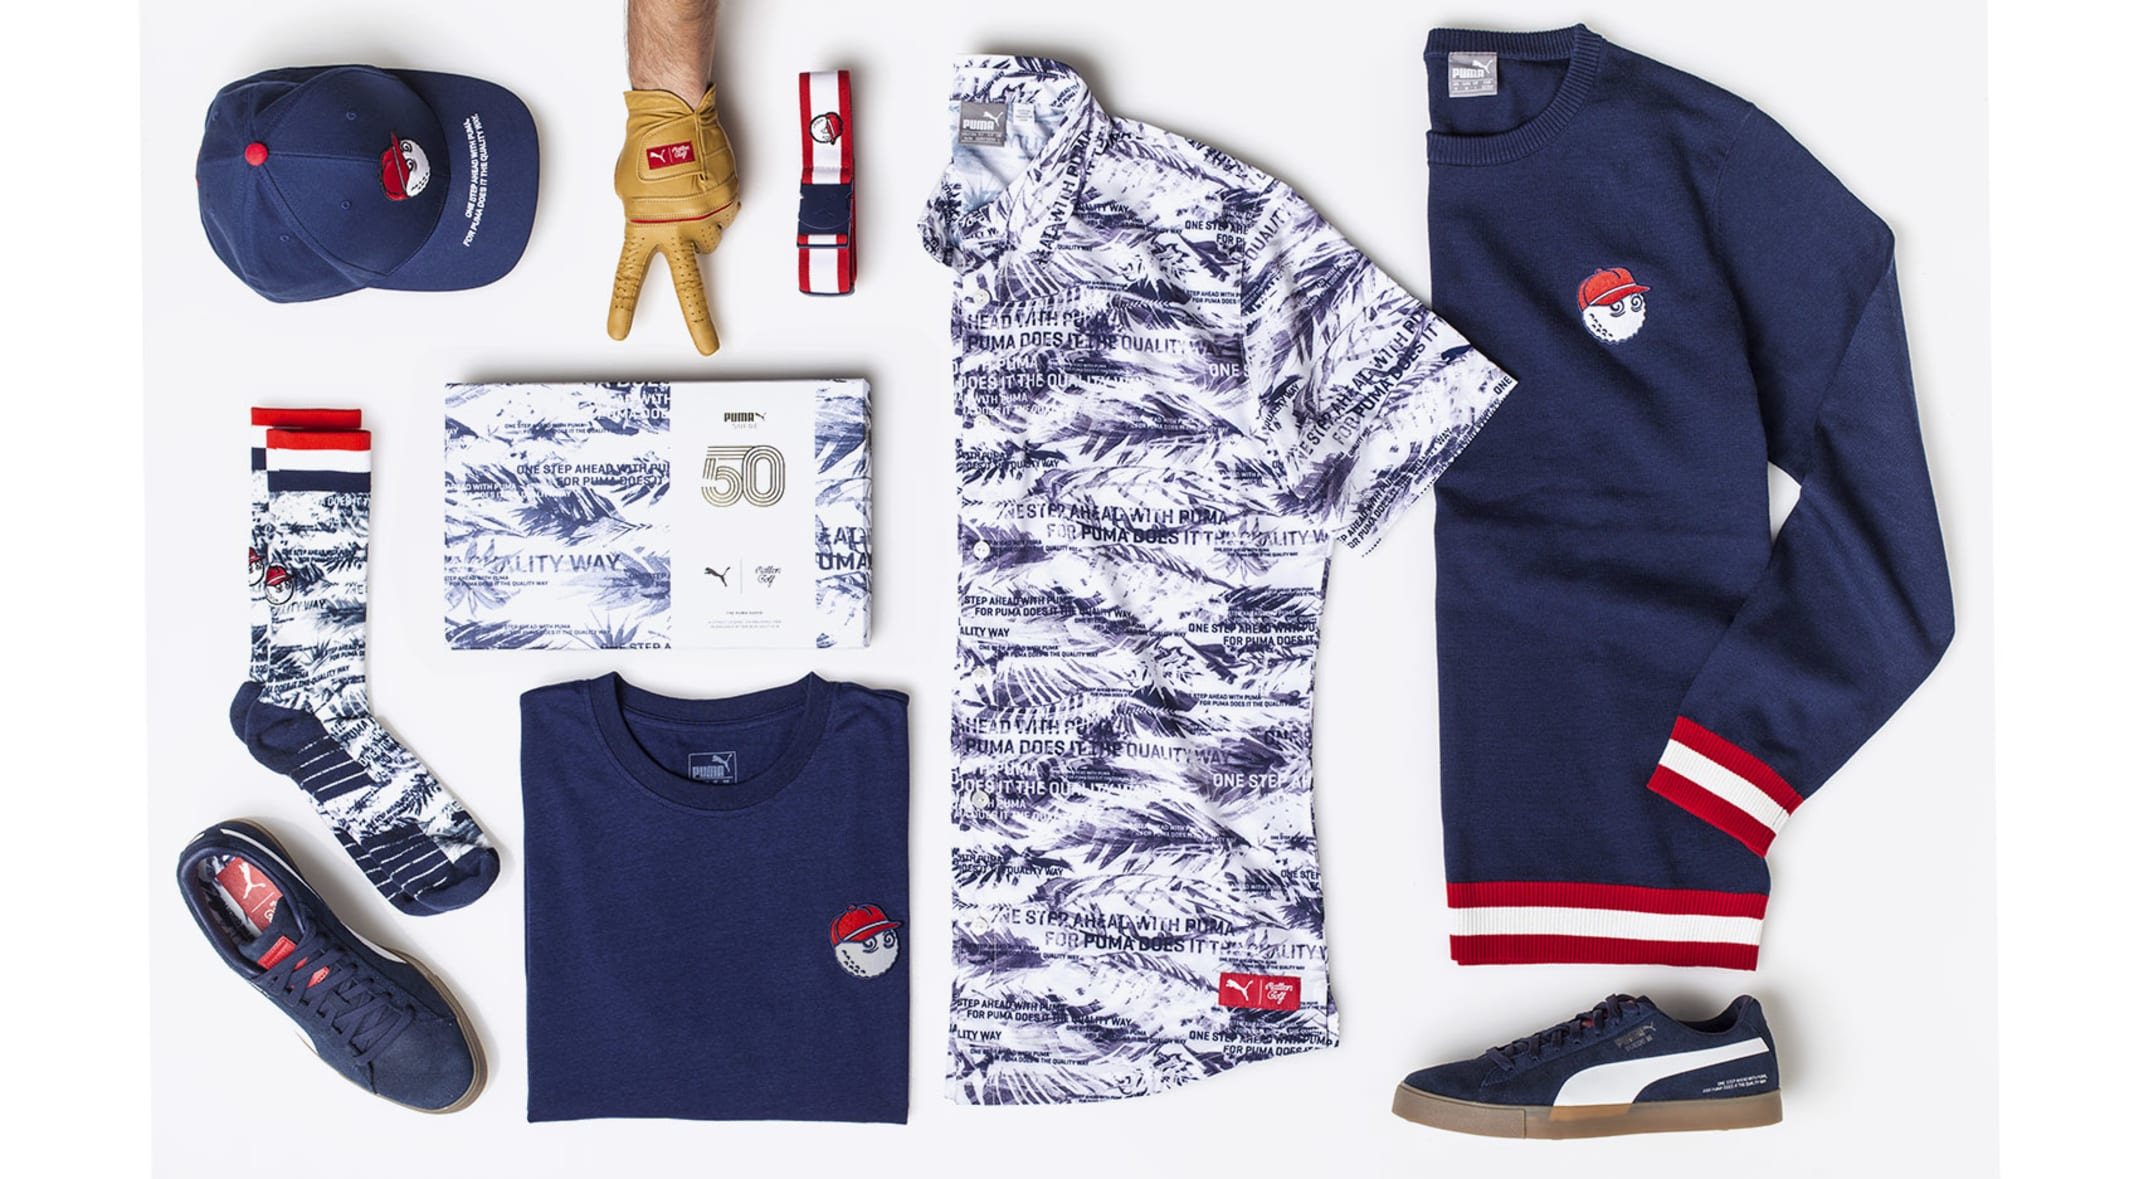 e55dec8a002b Puma and Malbon Golf have collaborated on an edgy eight piece collection  that blends vintage style